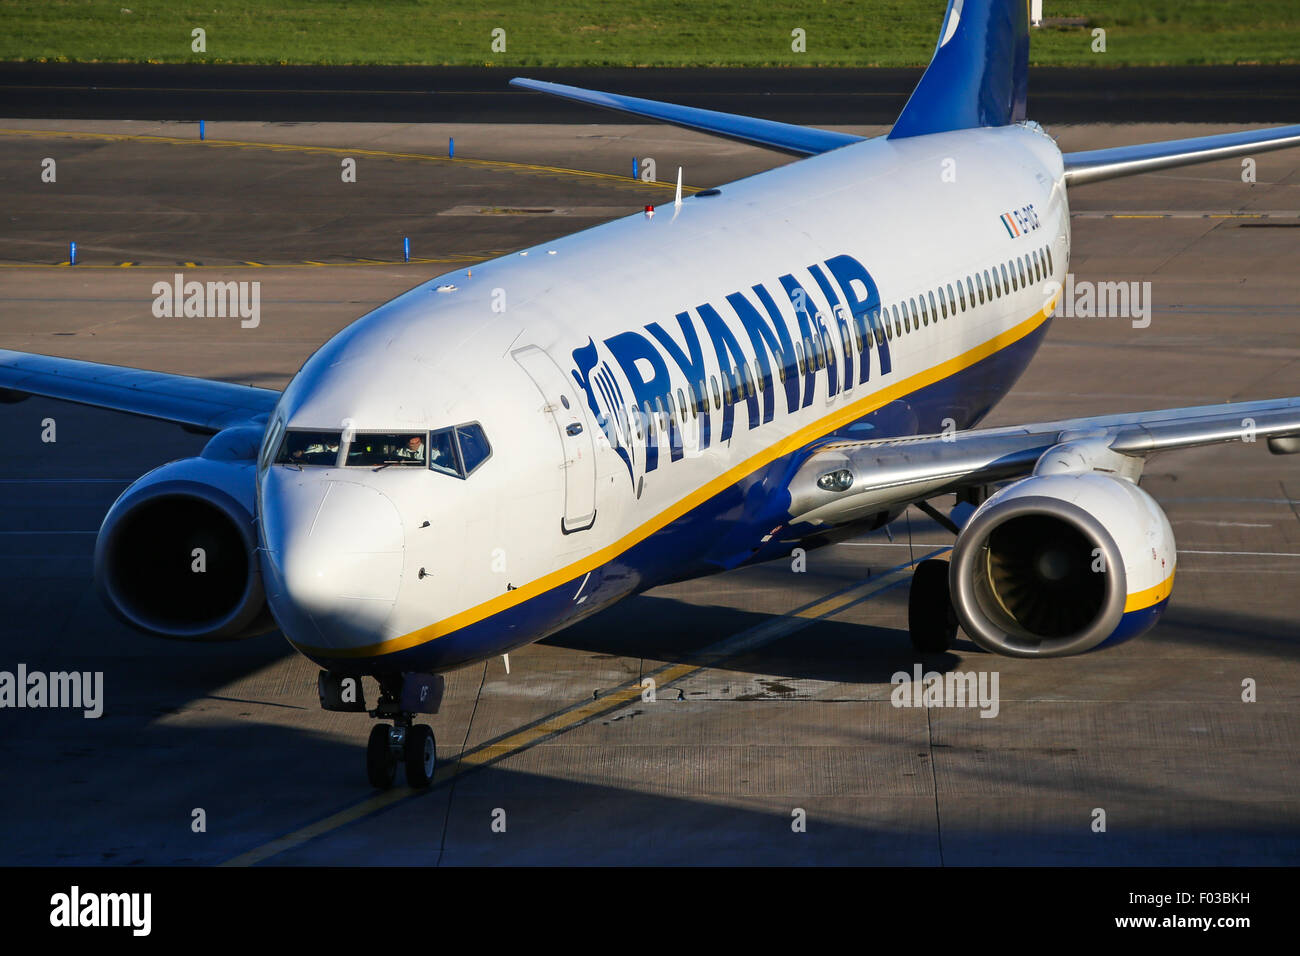 Ryanair Boeing 737-800 taxis to terminal 3 at Manchester airport. - Stock Image